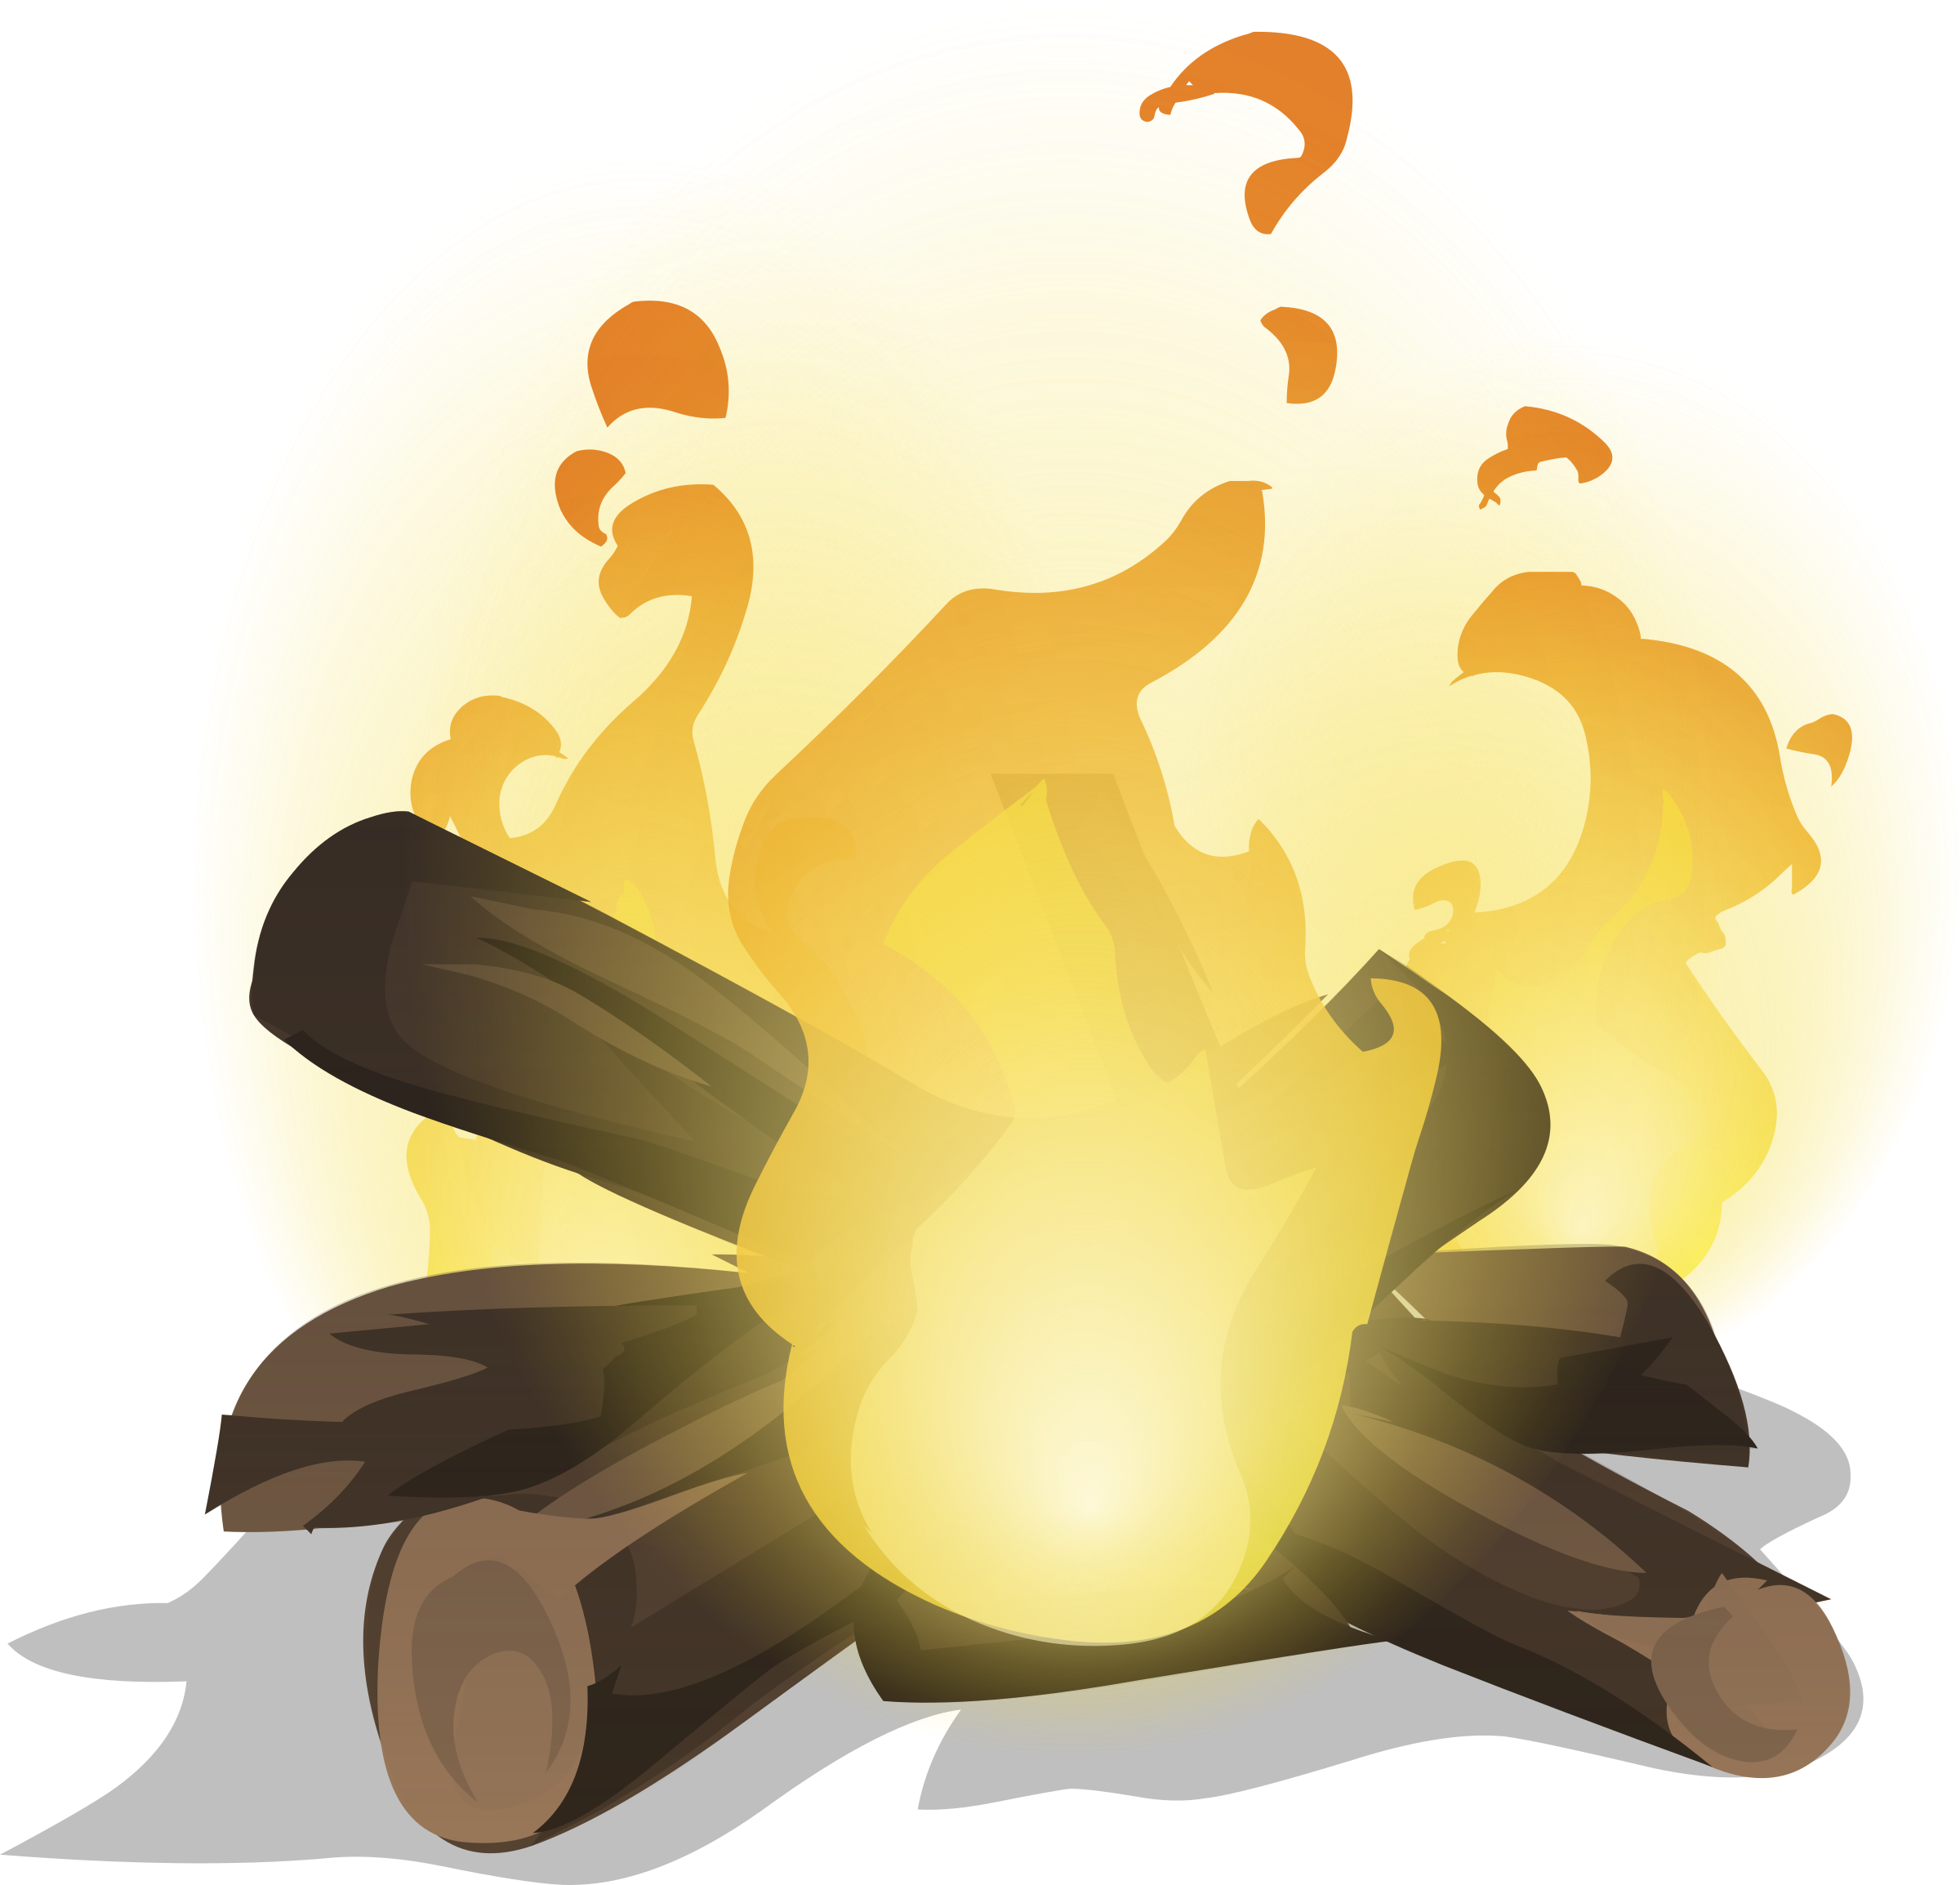 From glitch big image. Clipart fire illustration